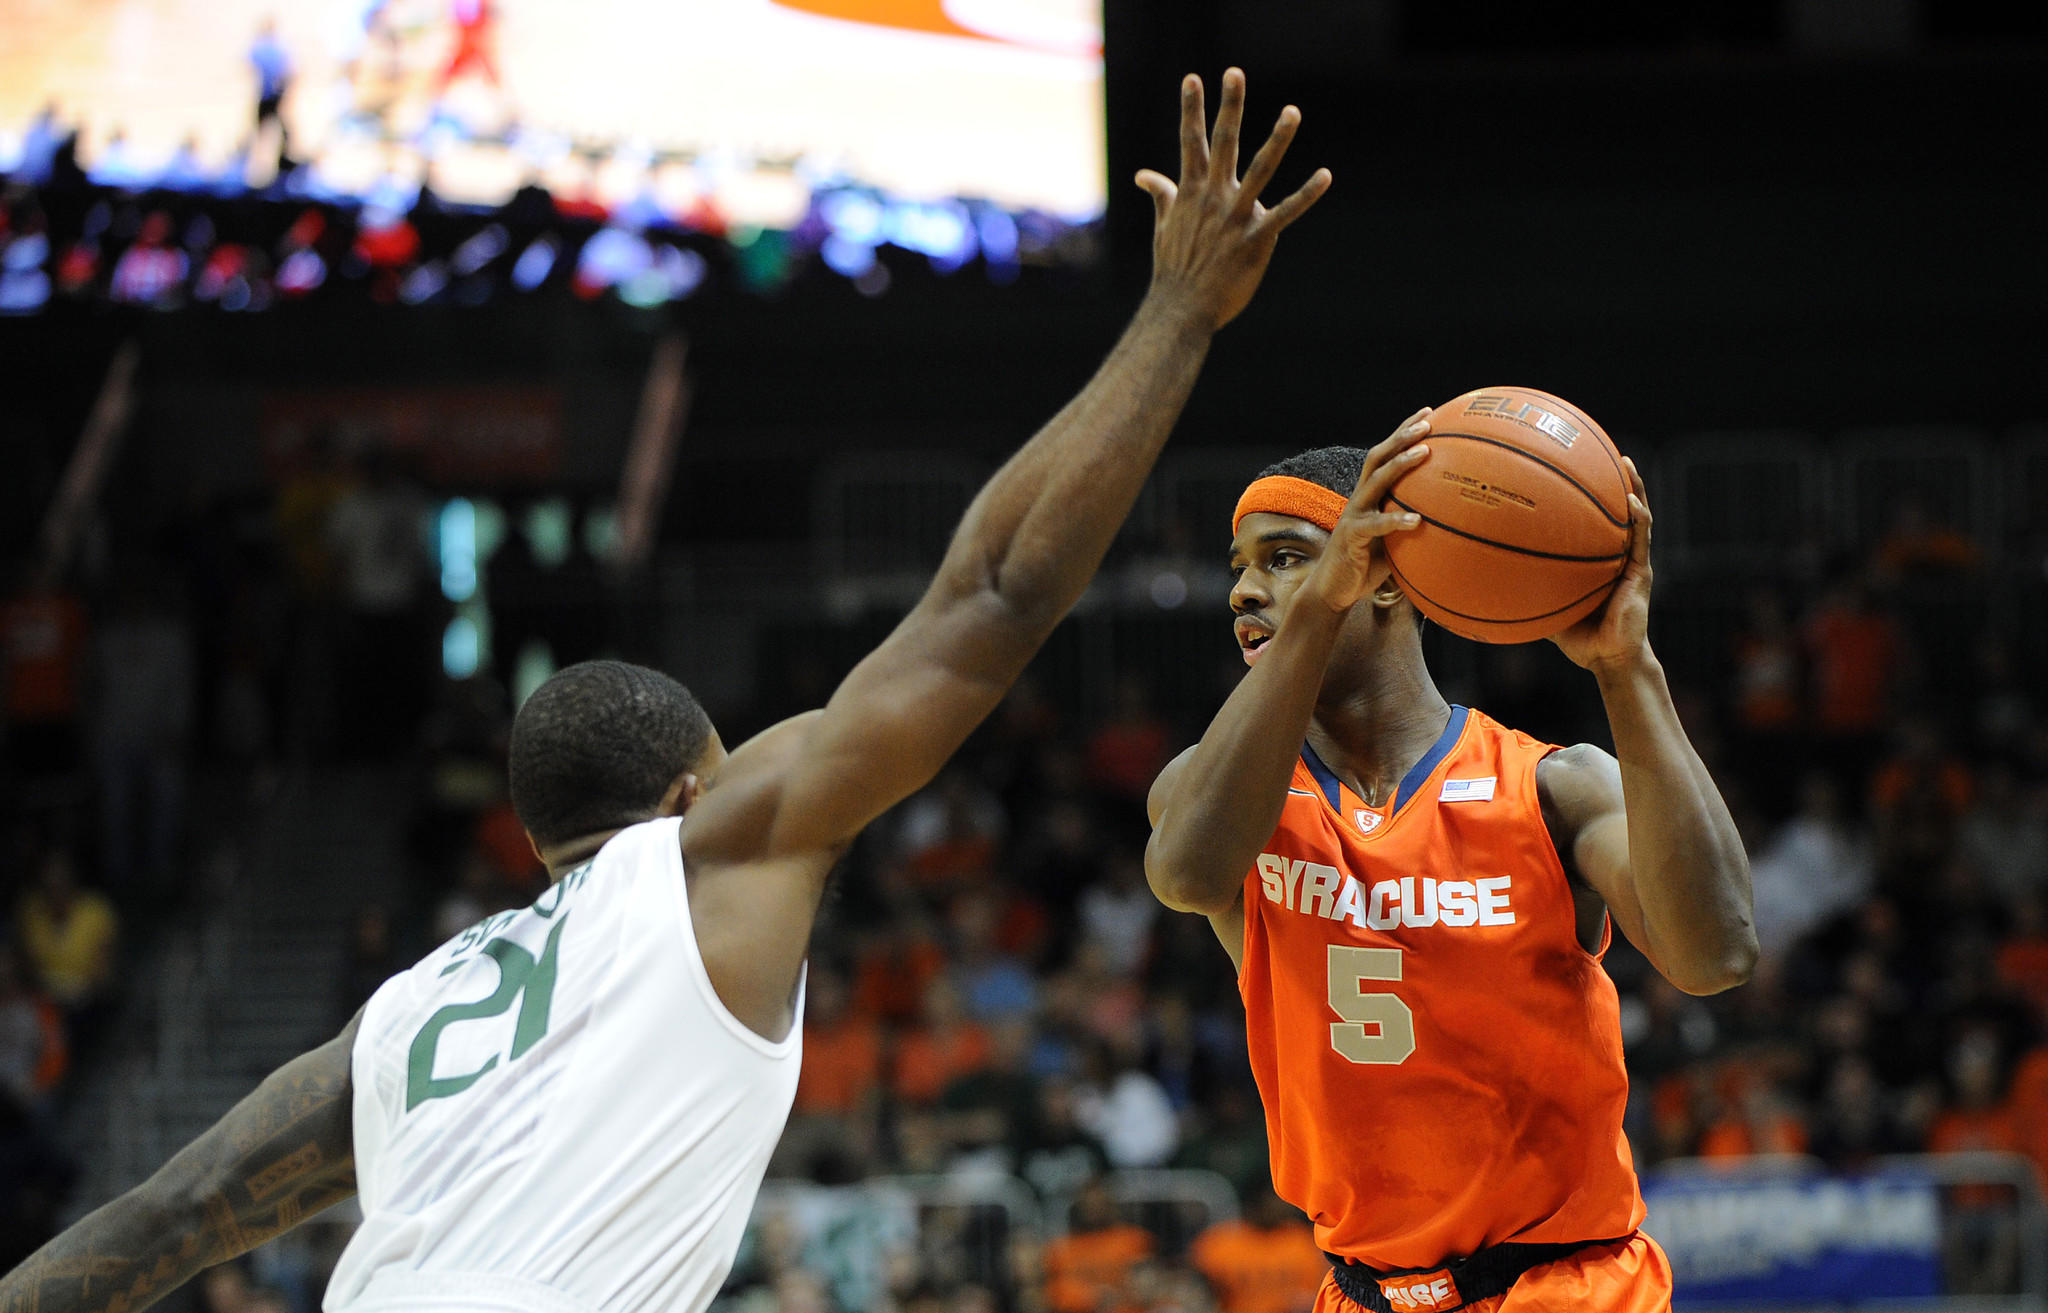 Syracuse Orange forward C.J. Fair (5) is pressured by Miami Hurricanes forward Erik Swoope (21) during the first half at BankUnited Center.